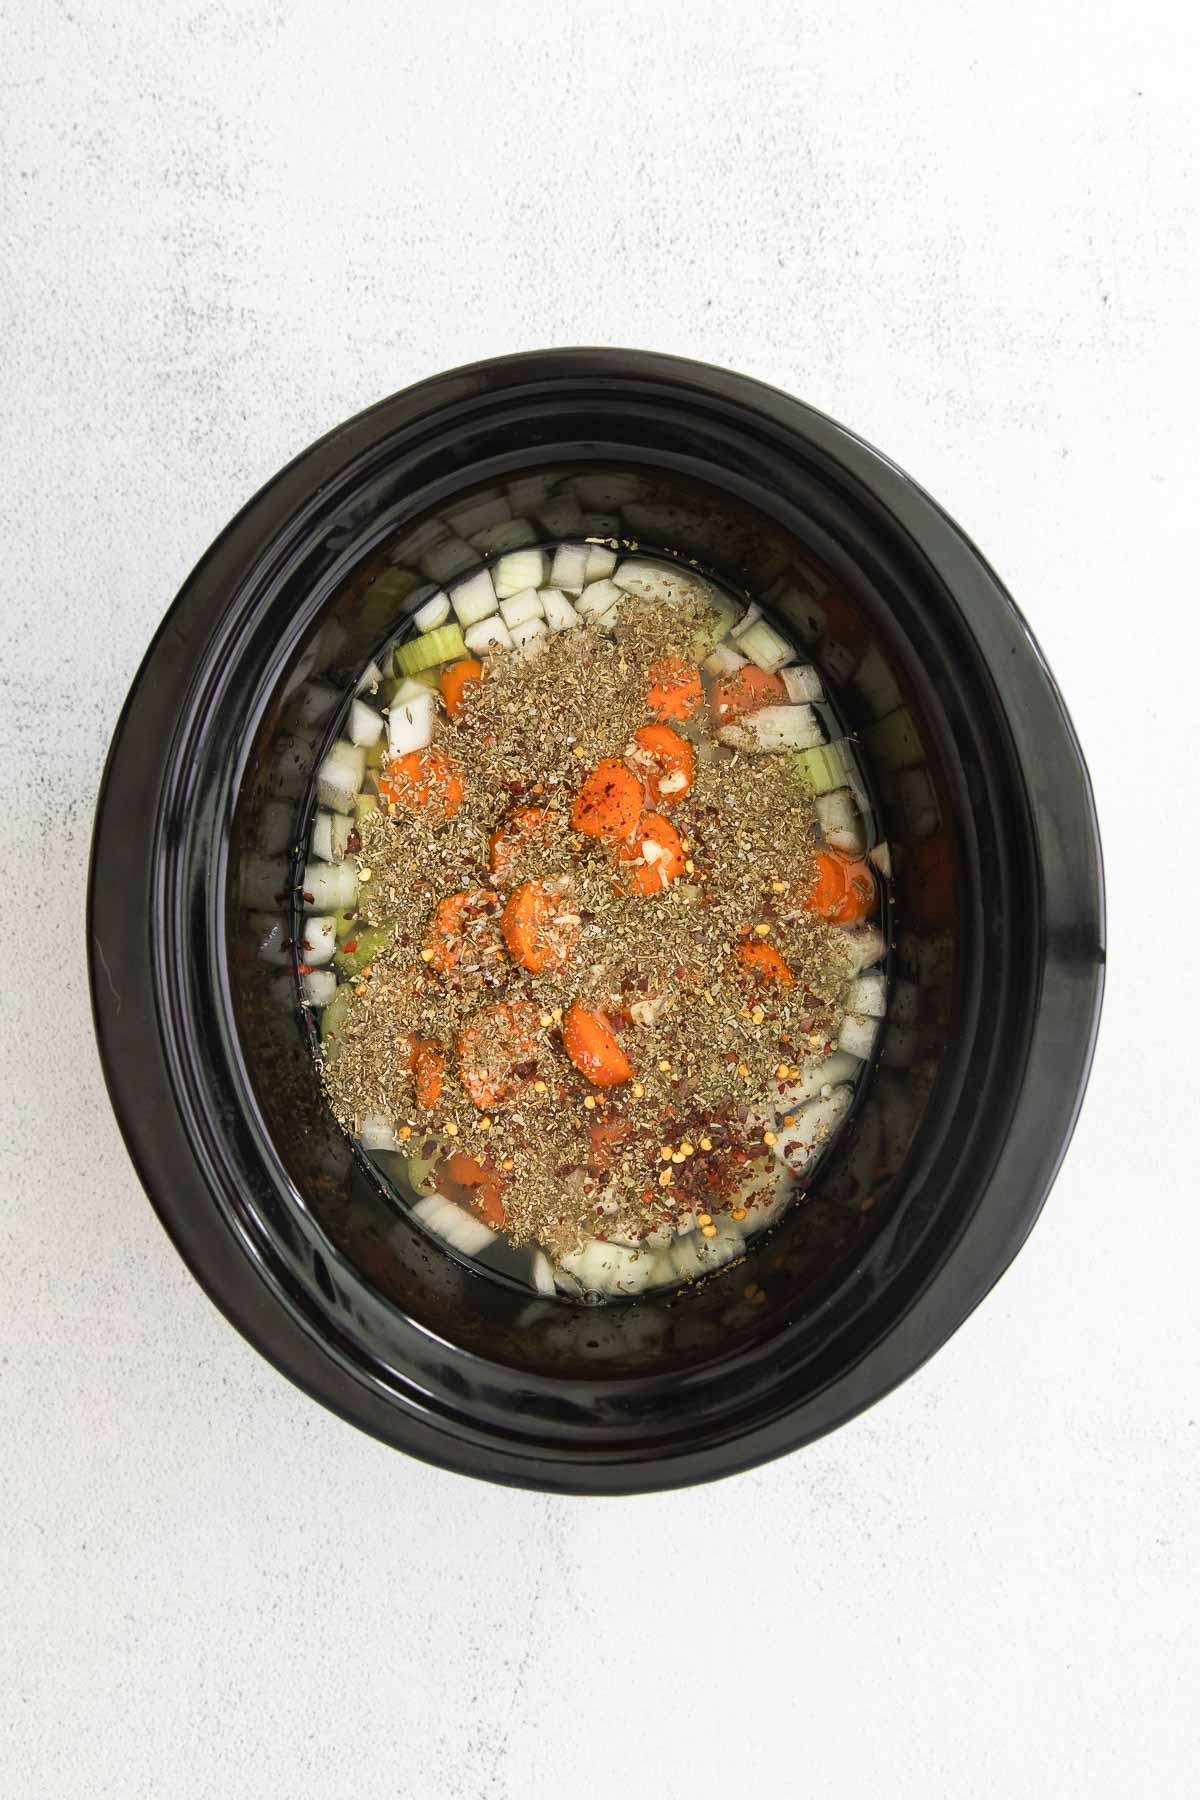 black slow cooker with diced onion, carrots and celery in chicken broth with dry spices on top